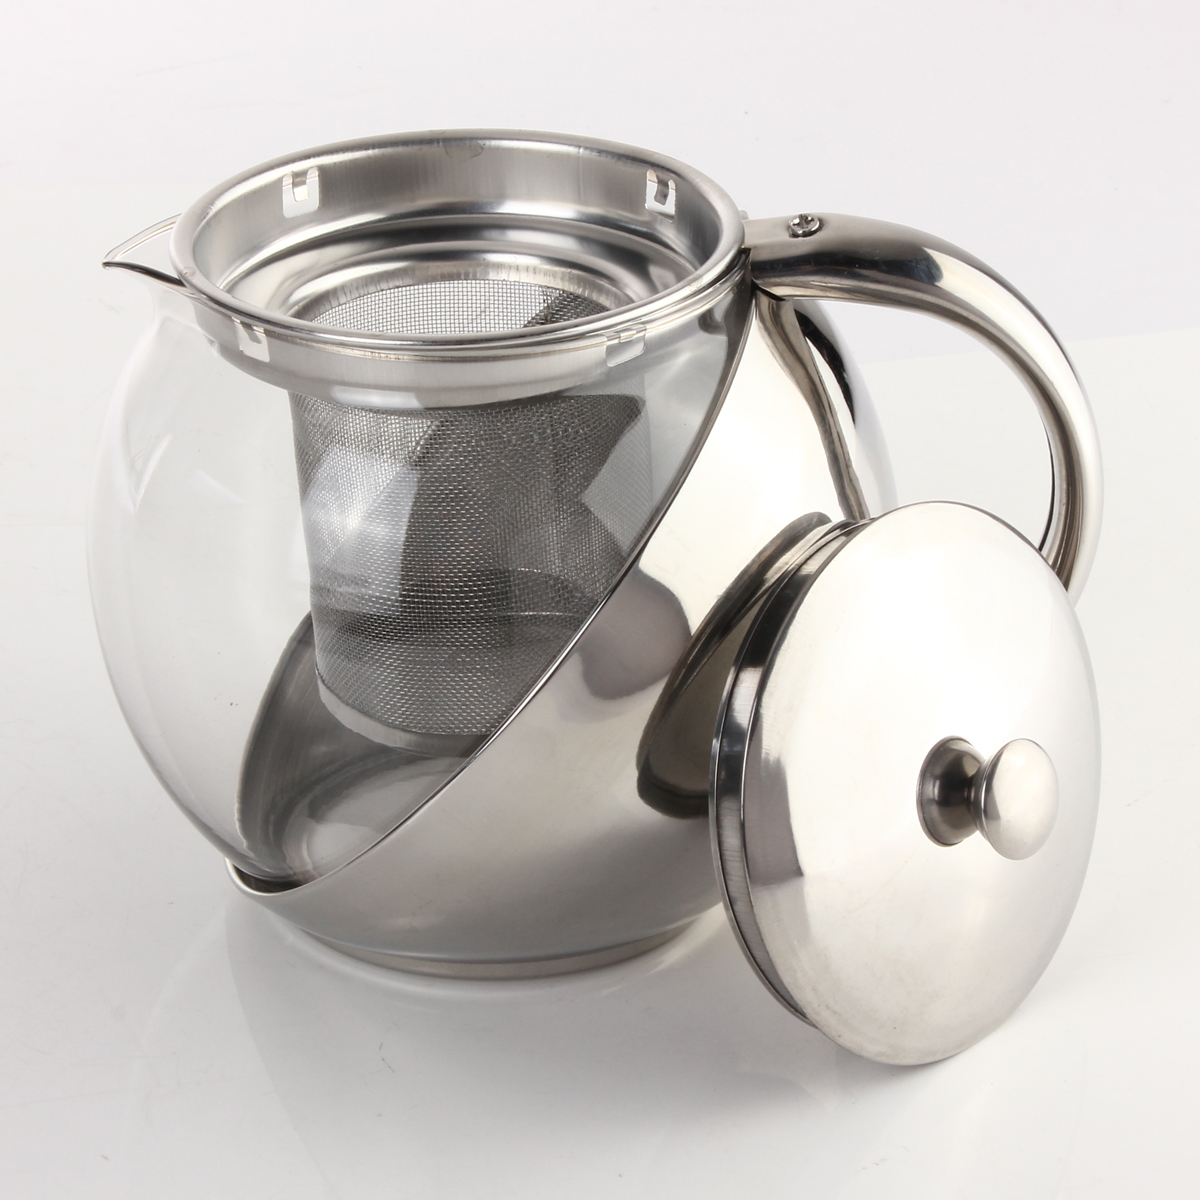 Tea Kettle With Strainer 900ml Stainless Steel Teapot Coffee Pot With Loose Tea